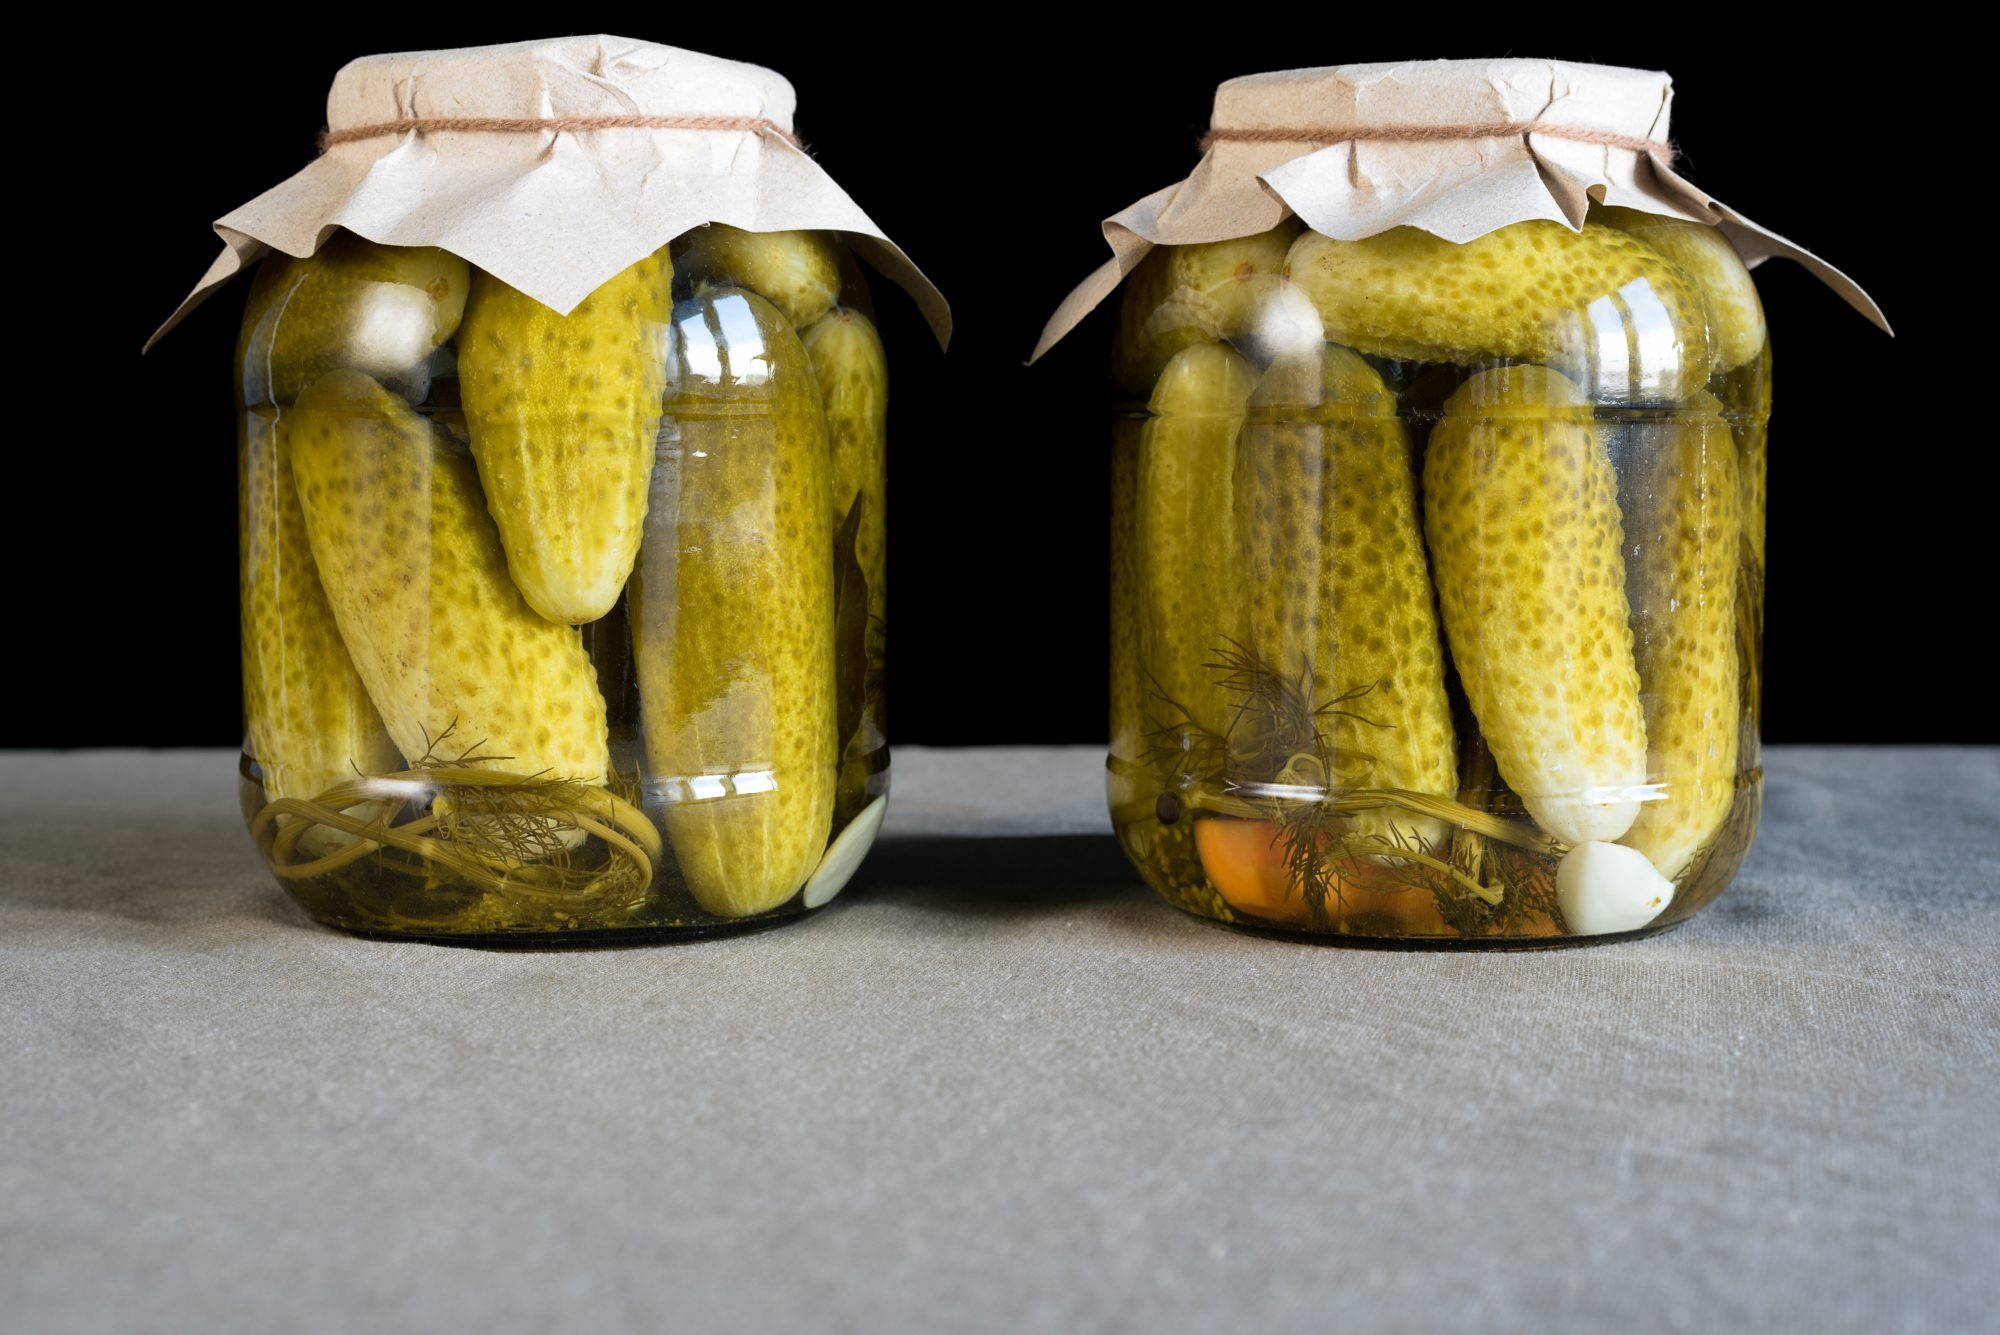 Homemade Pickles in Jar